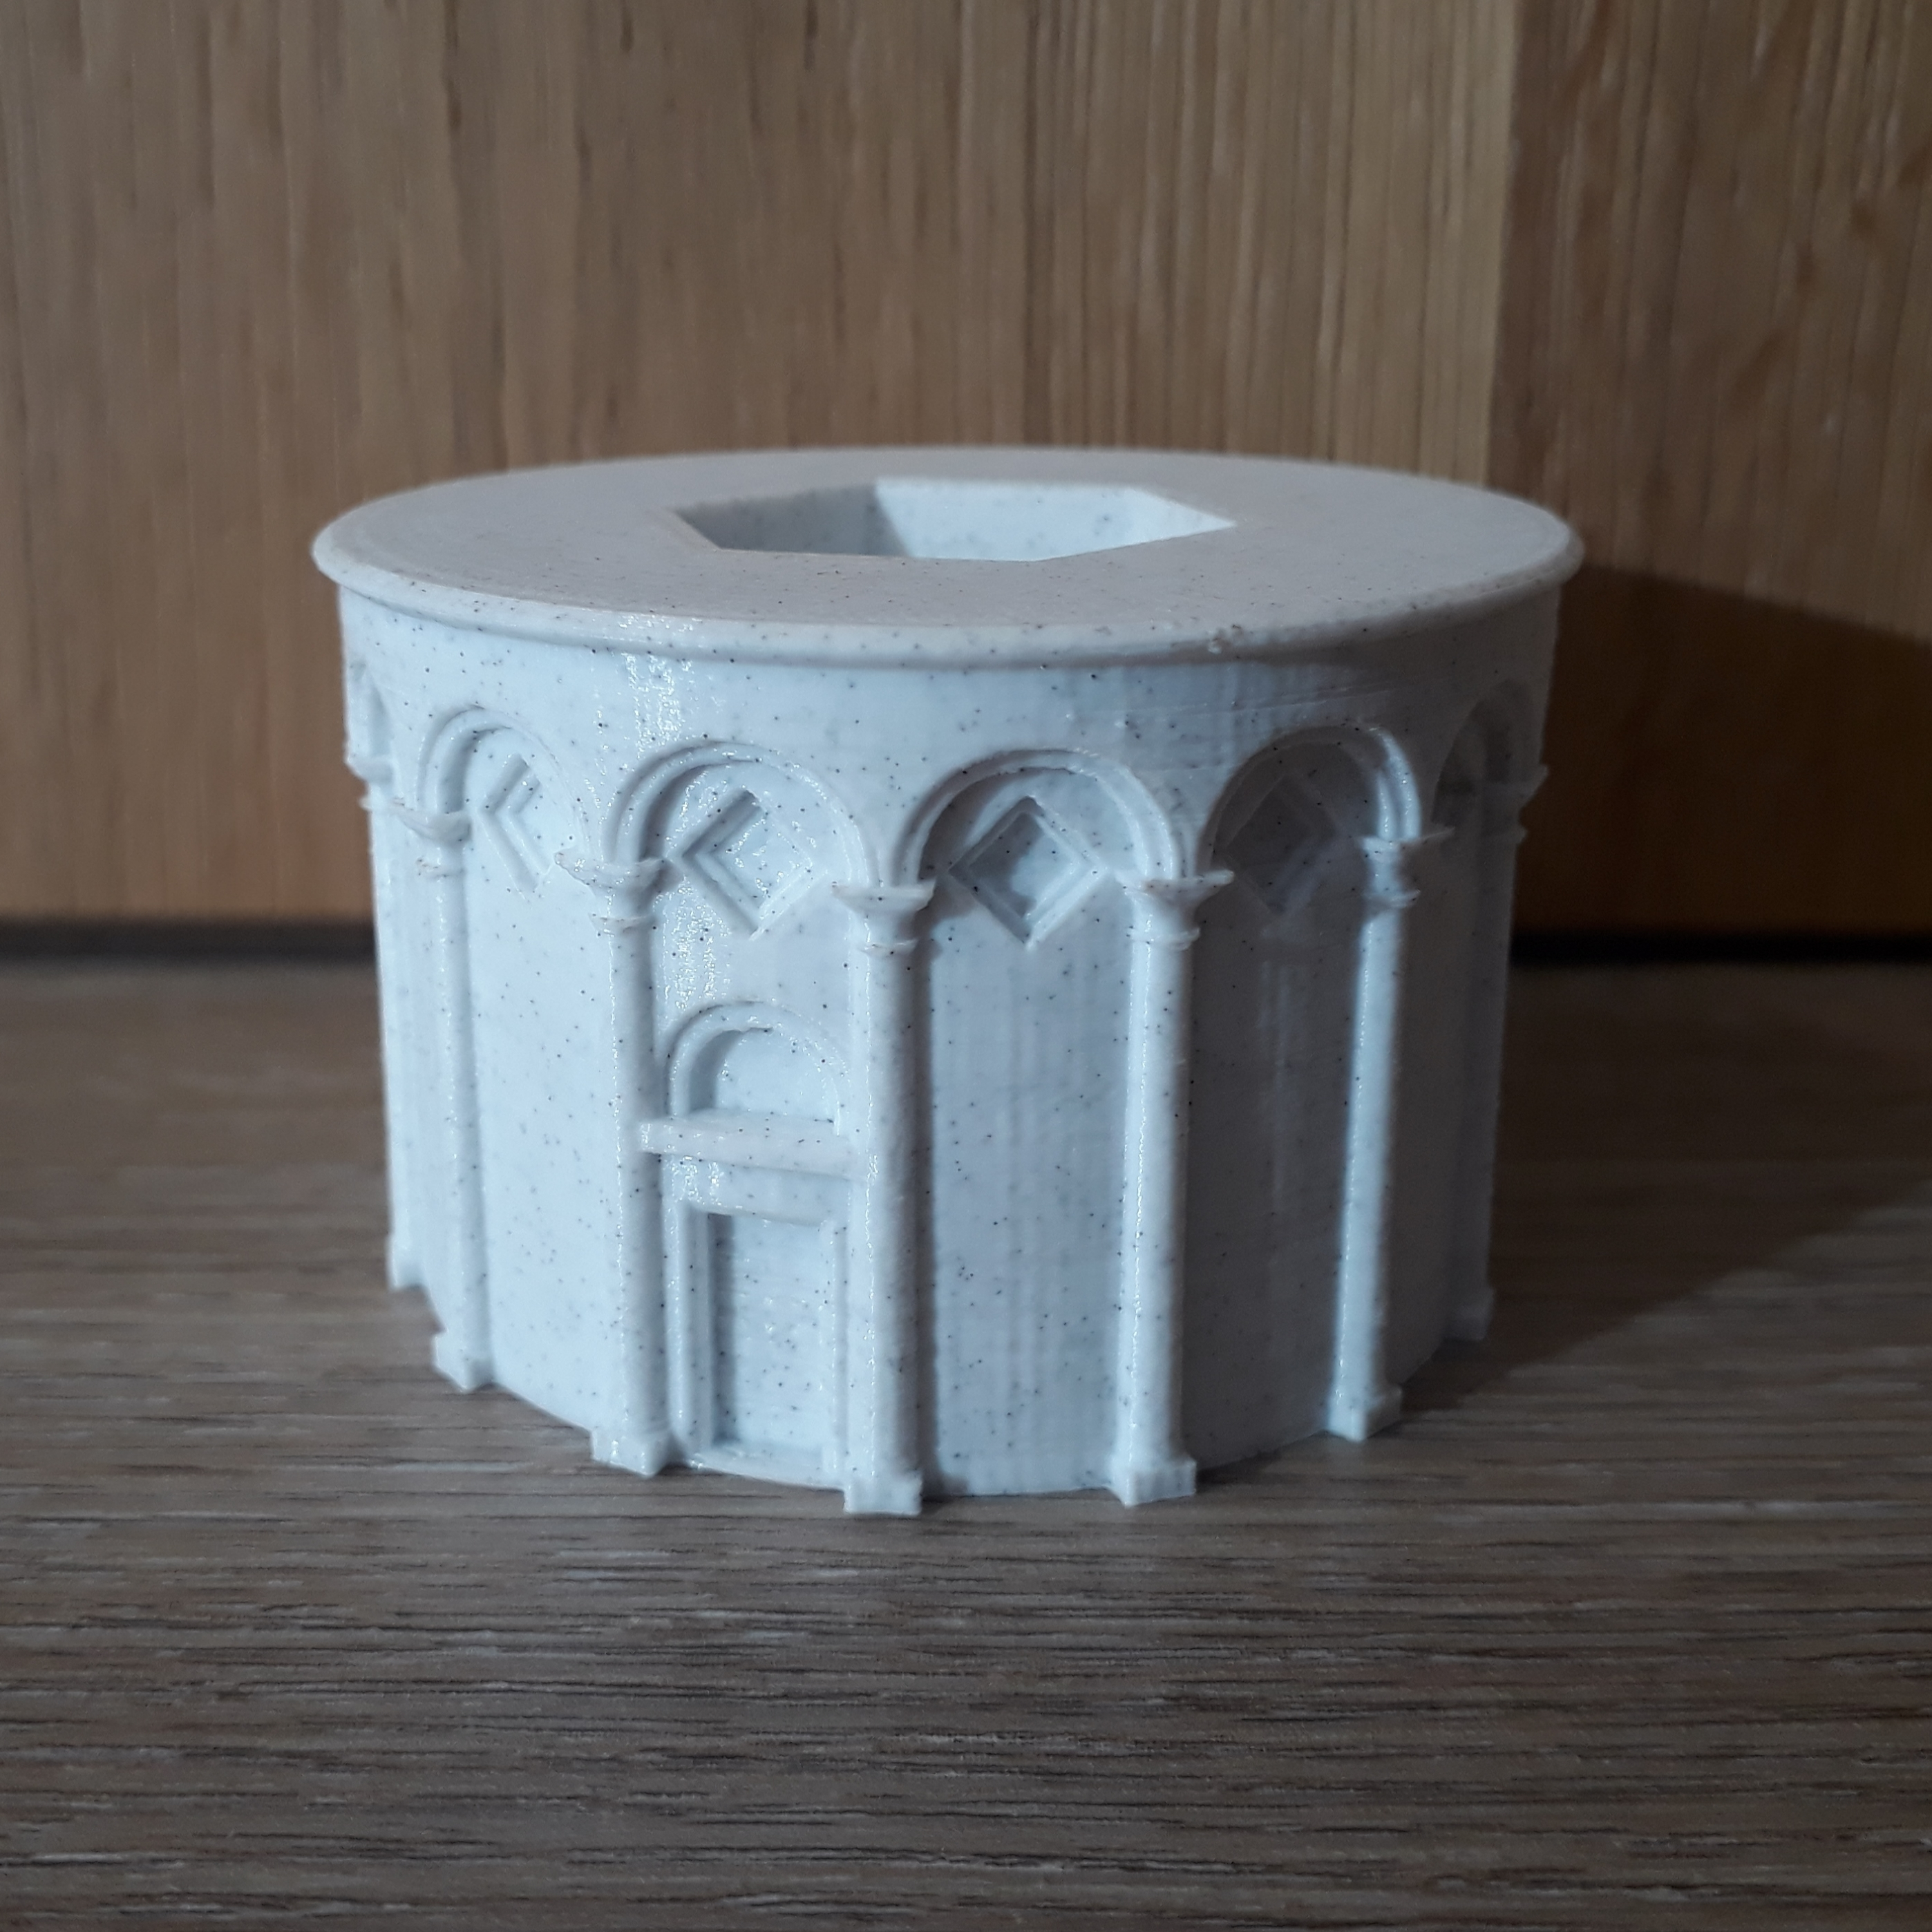 20200212_104147.jpg Download STL file Leaning Tower of Pisa • 3D printing object, Chrisibub